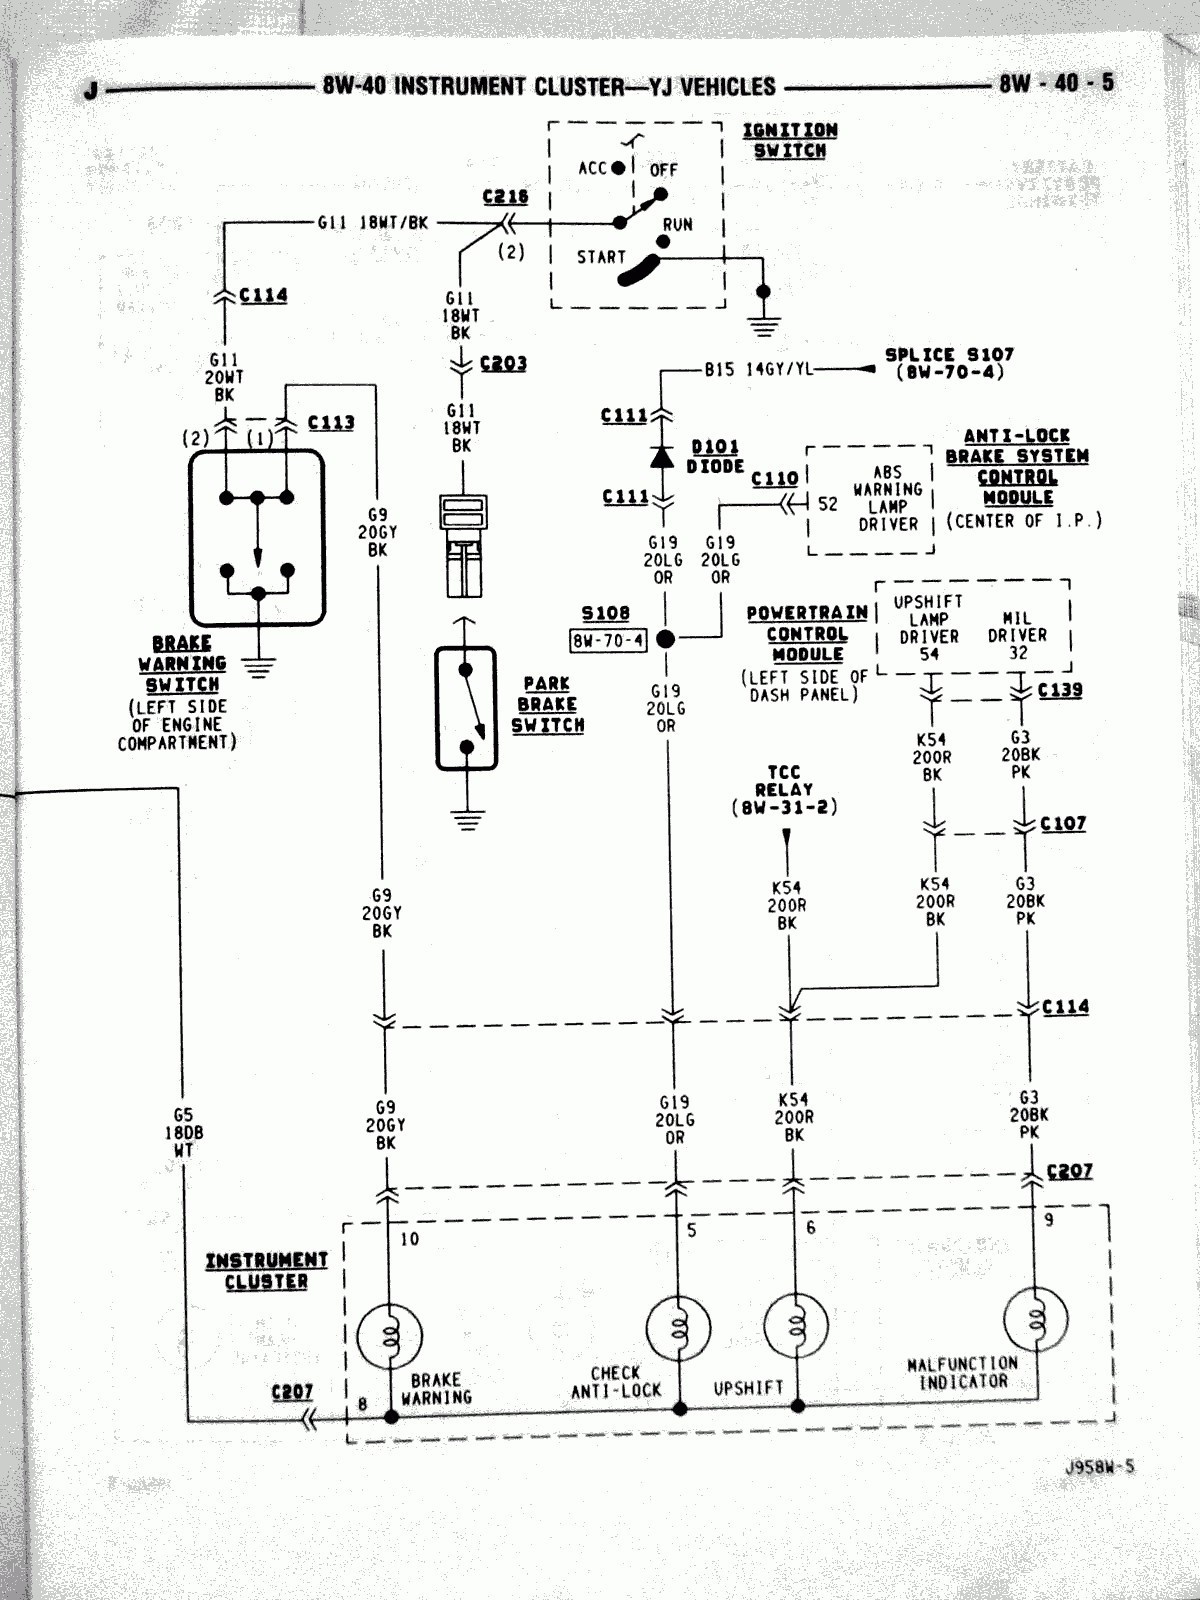 95 Jeep Wrangler Engine Diagram 1992 Jeep Wrangler Ignition ... Ignition Switch Wiring Jeep Yj on jeep yj brake switch wiring, jeep yj door switch wiring, honda odyssey ignition switch wiring, jeep yj alternator, jeep yj headlight switch wiring, jeep yj ignition coil, jeep yj battery,